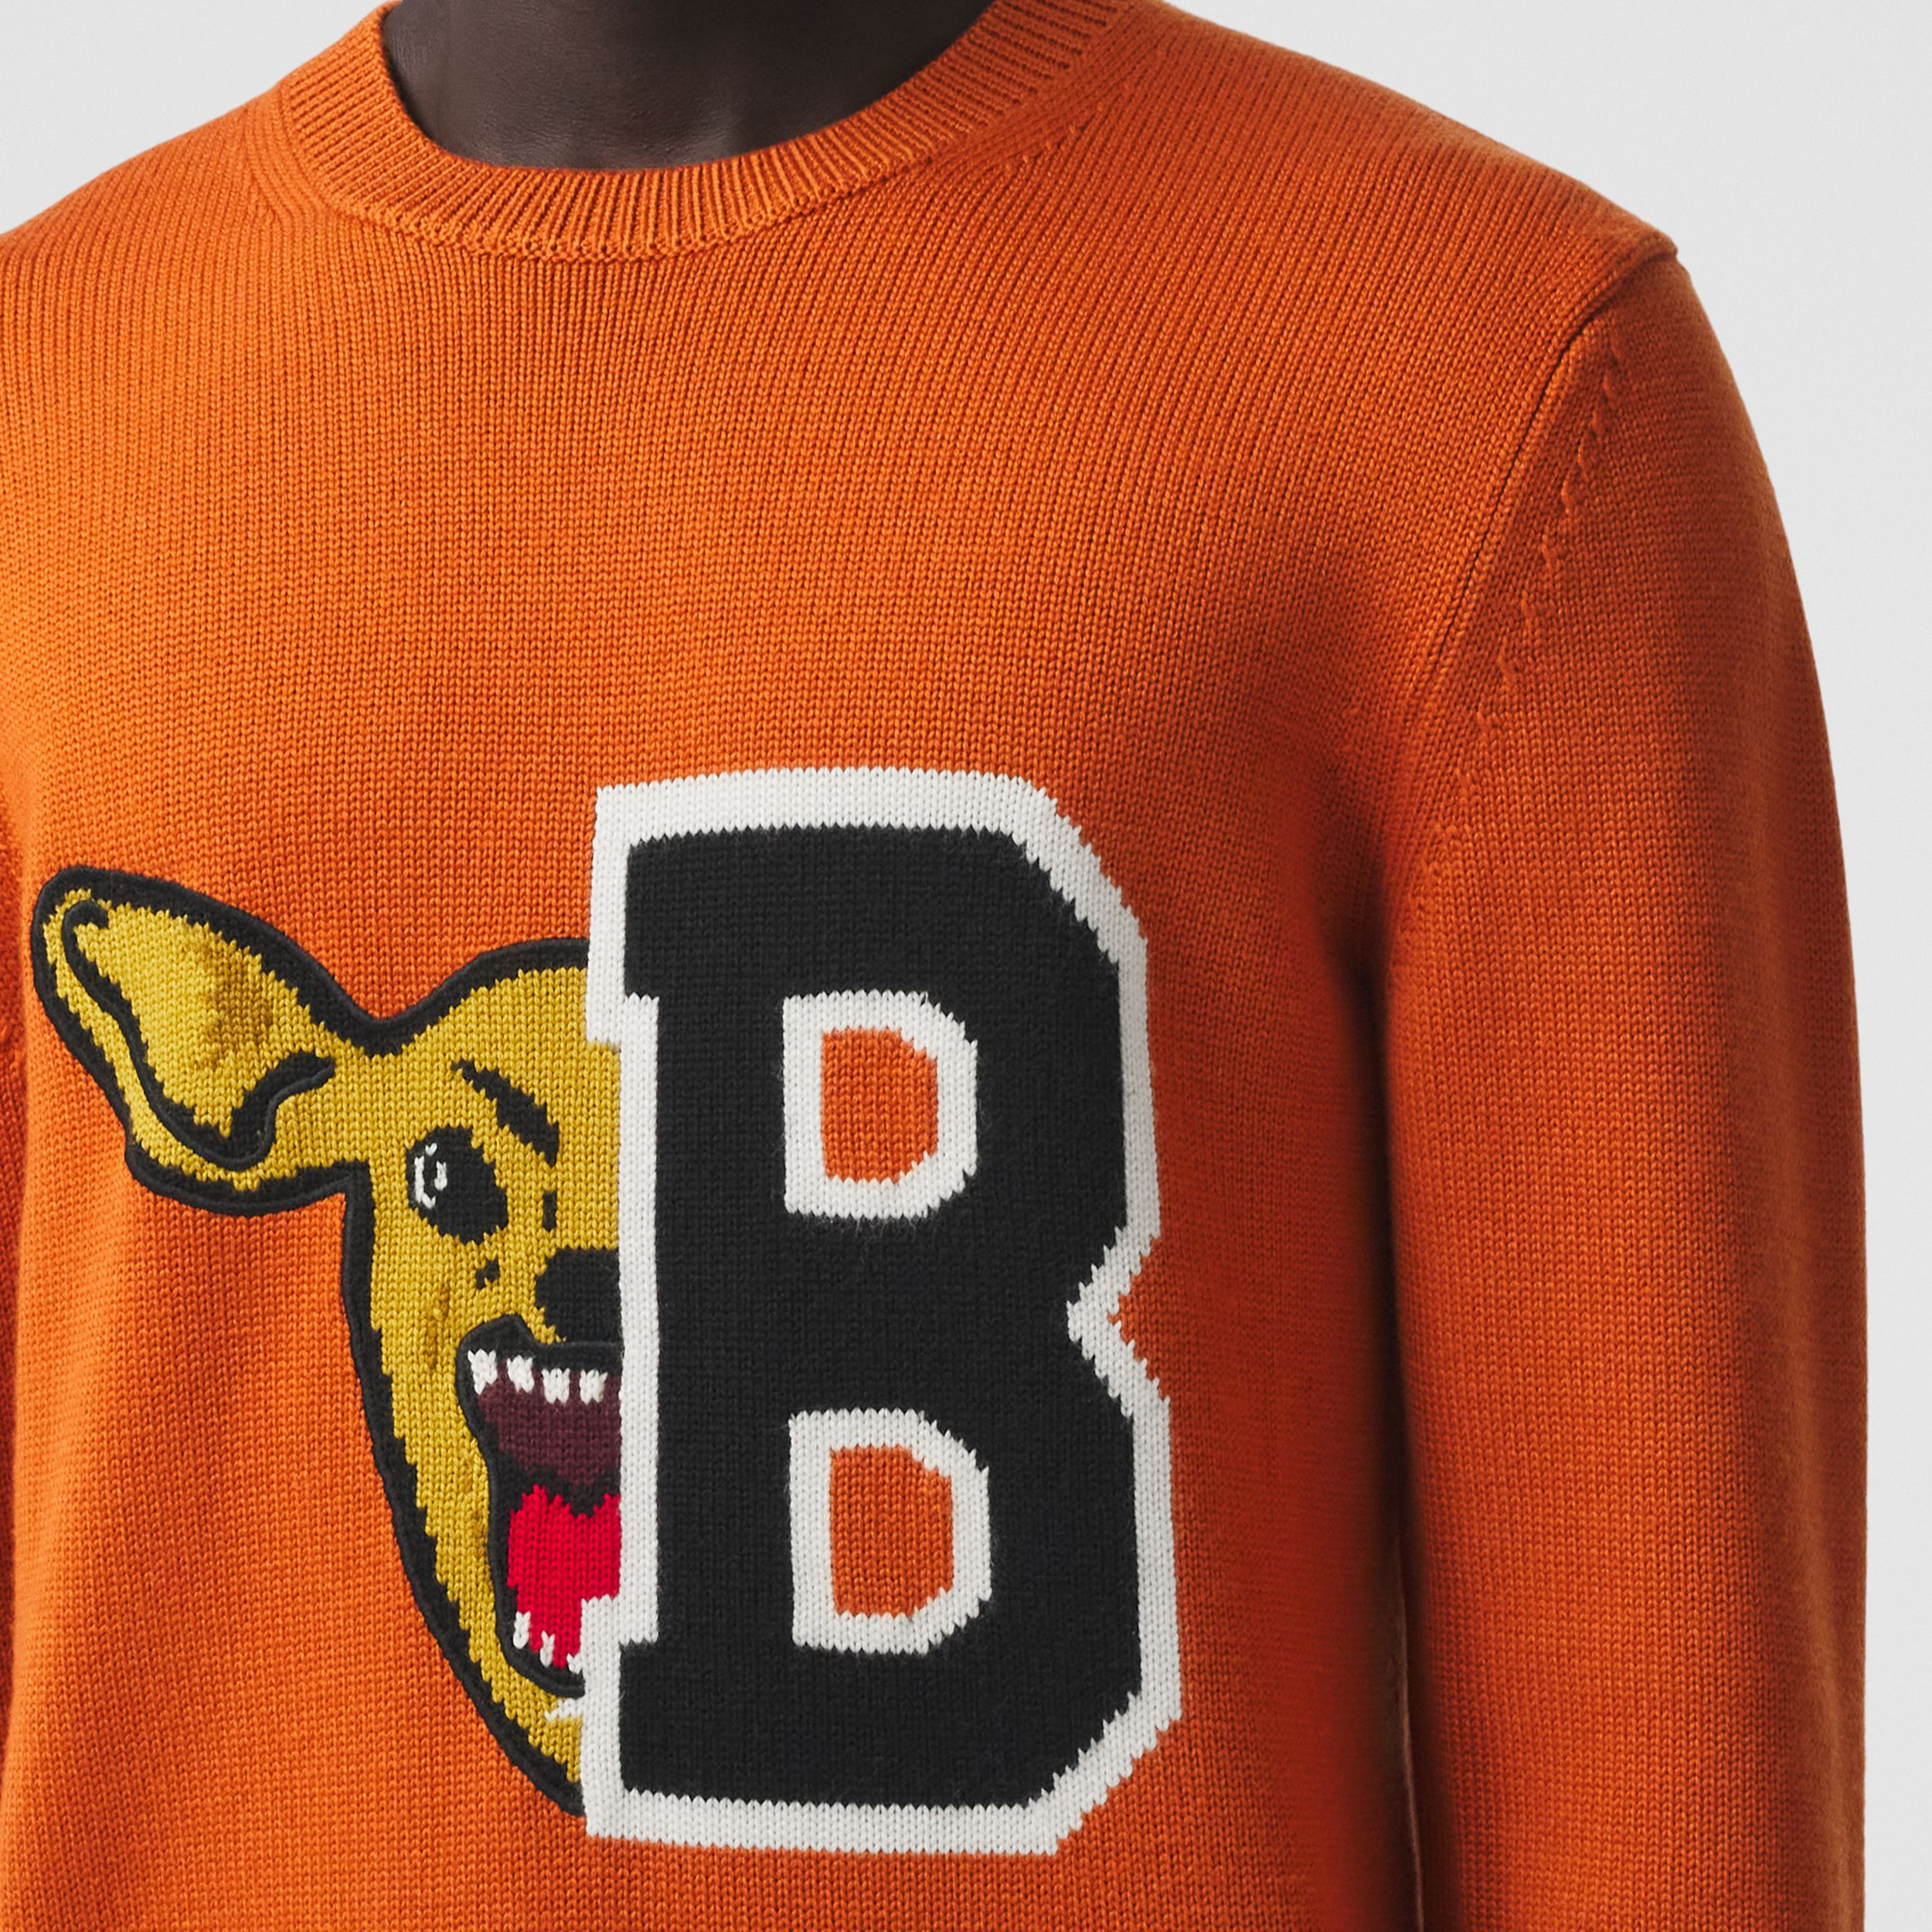 Varsity Graphic Merino Wool Jacquard Sweater in Burnt Orange - Men | Burberry - 2